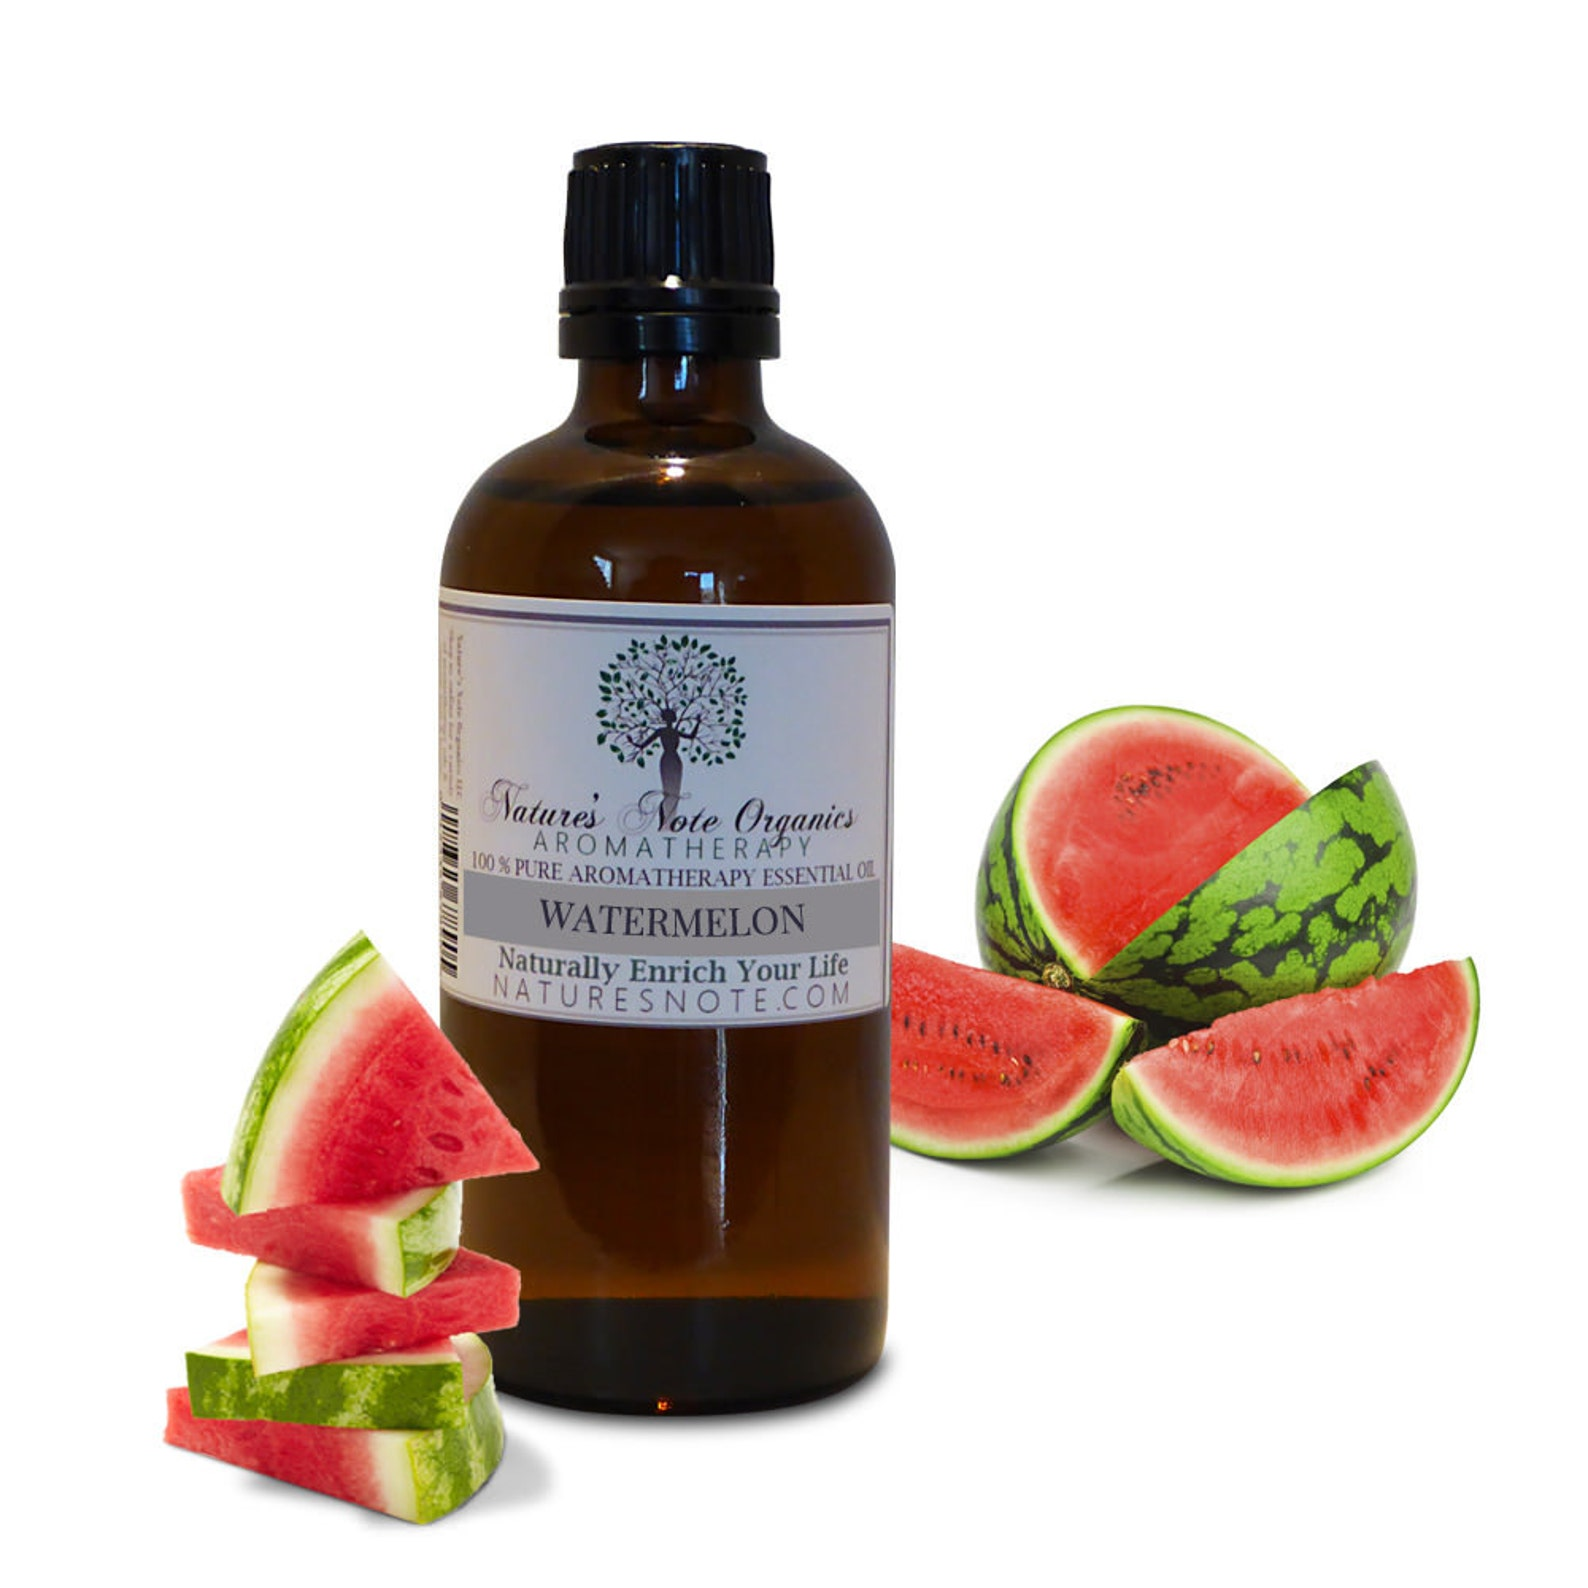 Watermelon Essential Oil | 15 Essential Oils That Are Perfect for The Summer Solstice (plus great ideas for how to use them!)